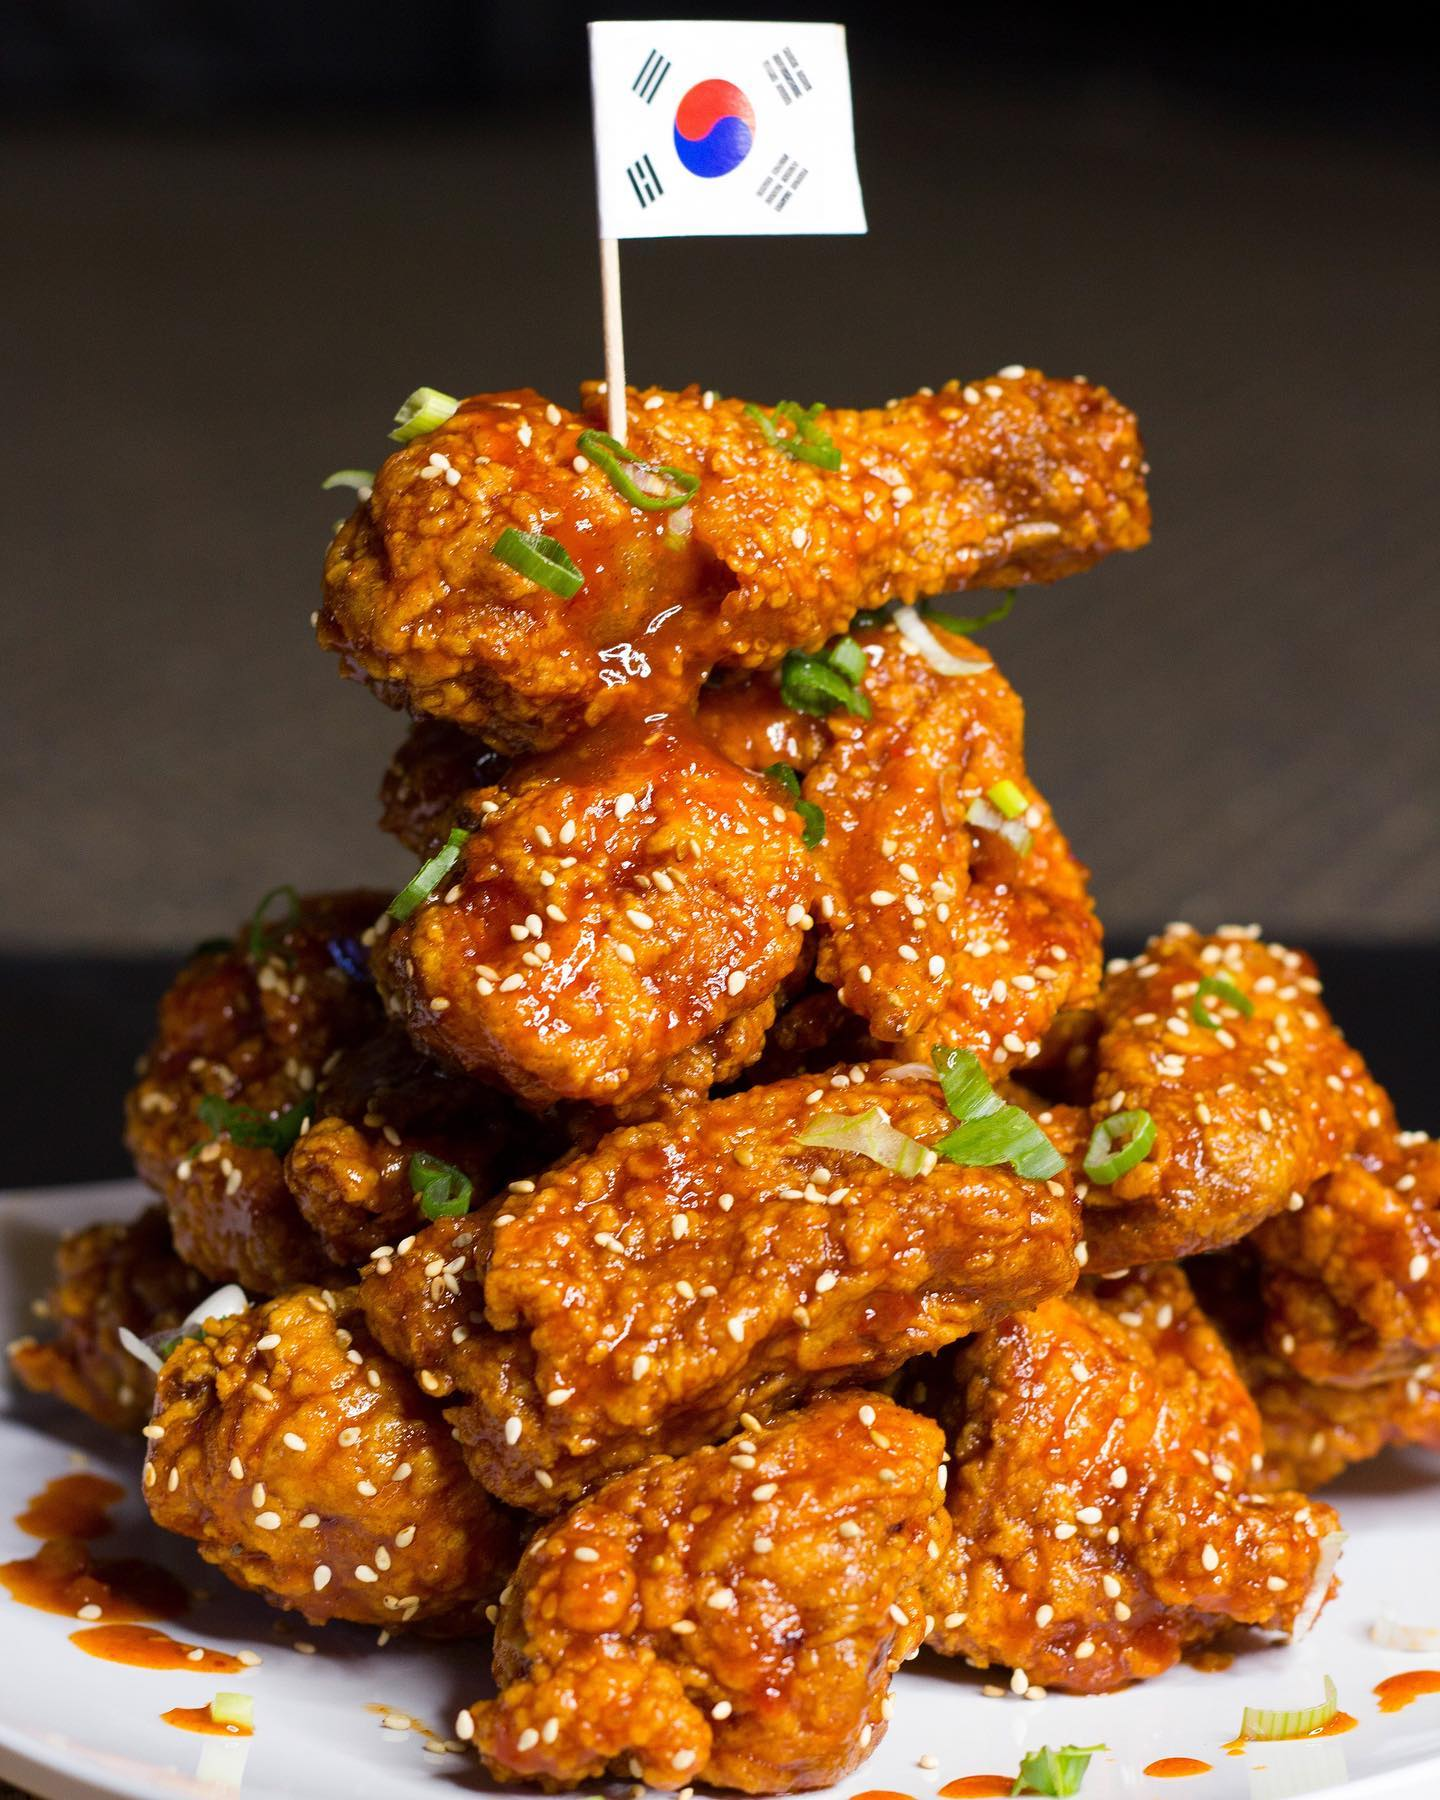 A pile of Korean fried chicken from College Roadhouse